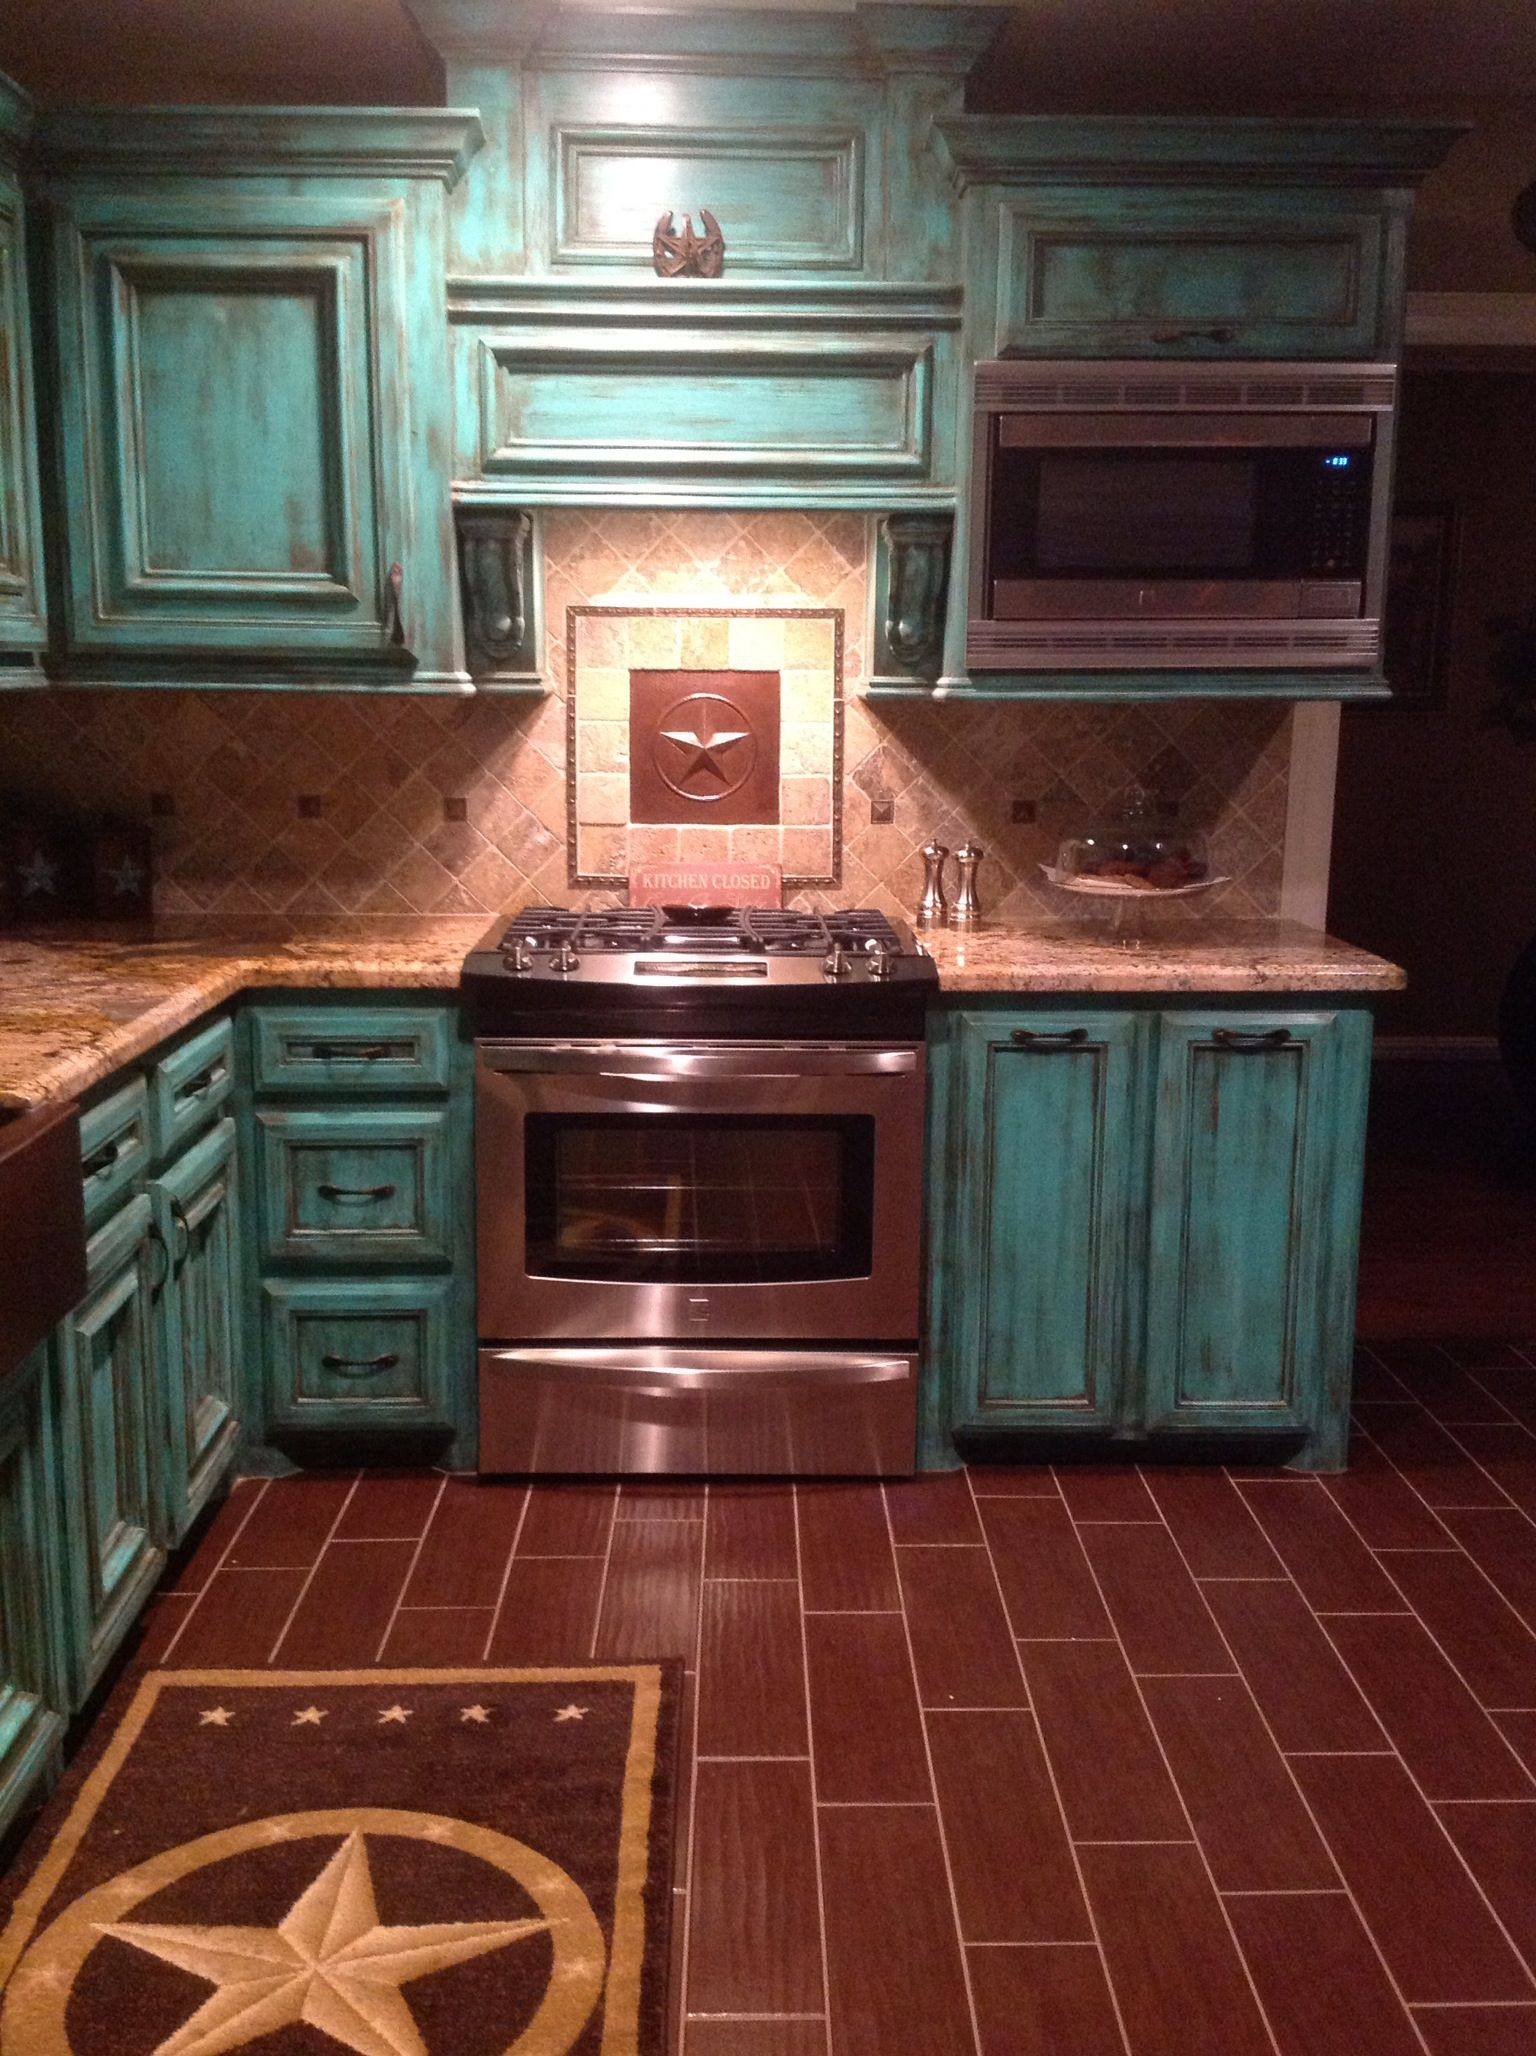 Best Kitchen Gallery: Western Kitchen I Wonder If I Could Remodel My Kitchen Like This of Weathered Kitchen Cabinets Turquoise on rachelxblog.com